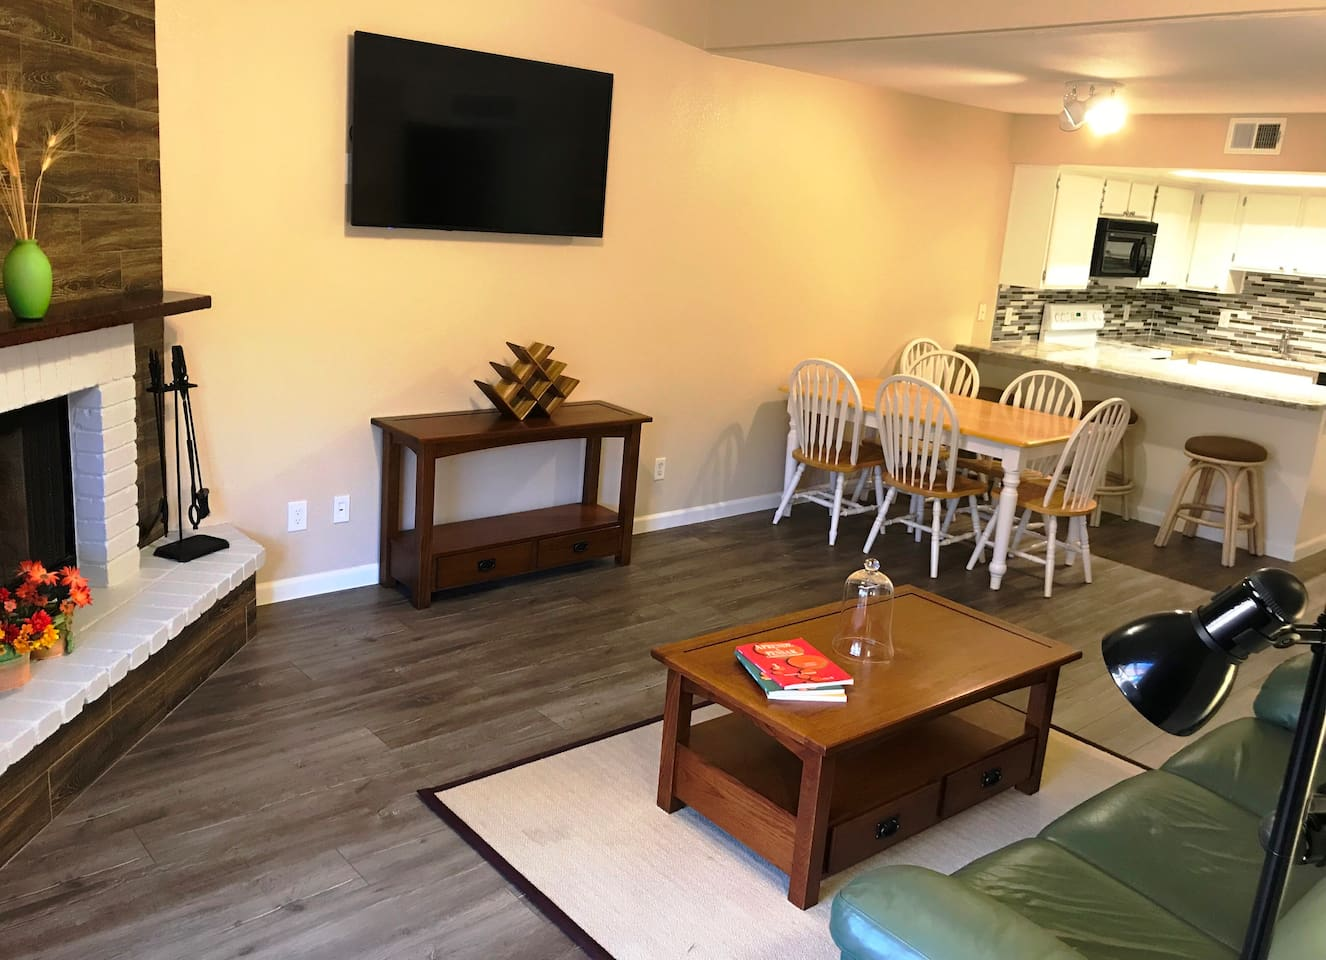 Our Siesta Townhome... Your Siesta Townhome!